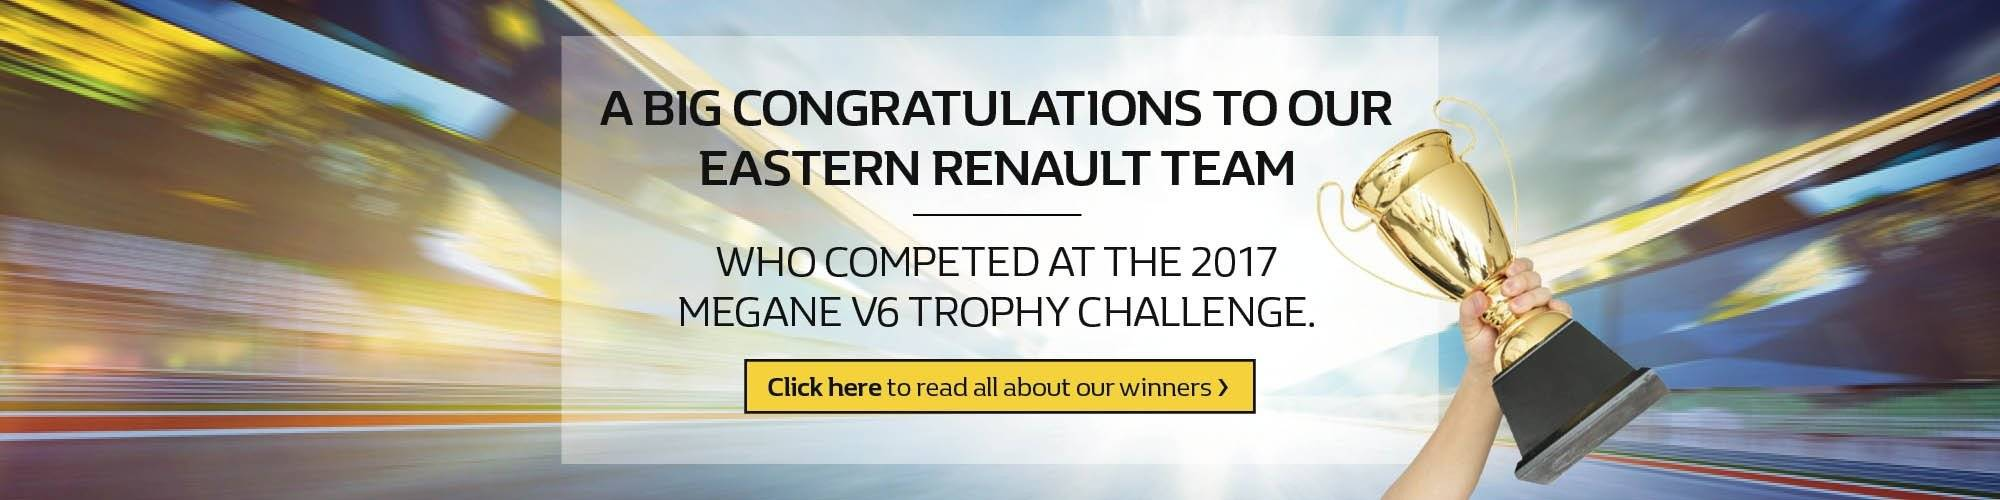 Eastern Renault Blog